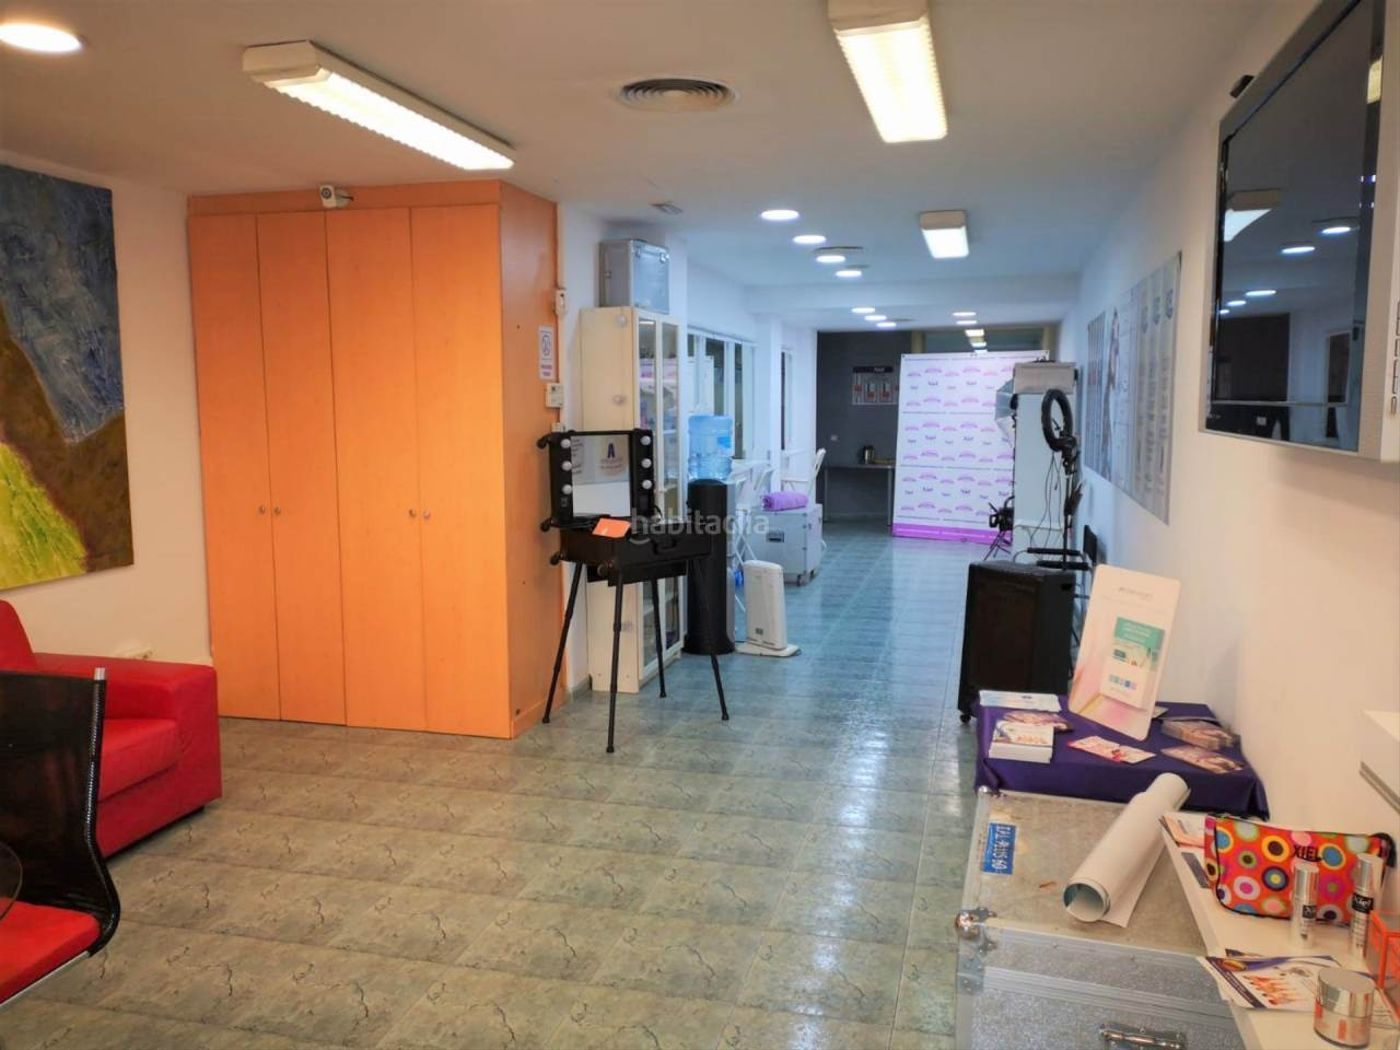 Alquiler Local Comercial en Carrer josep torras i bages, 15. Amplio local comercial reformado